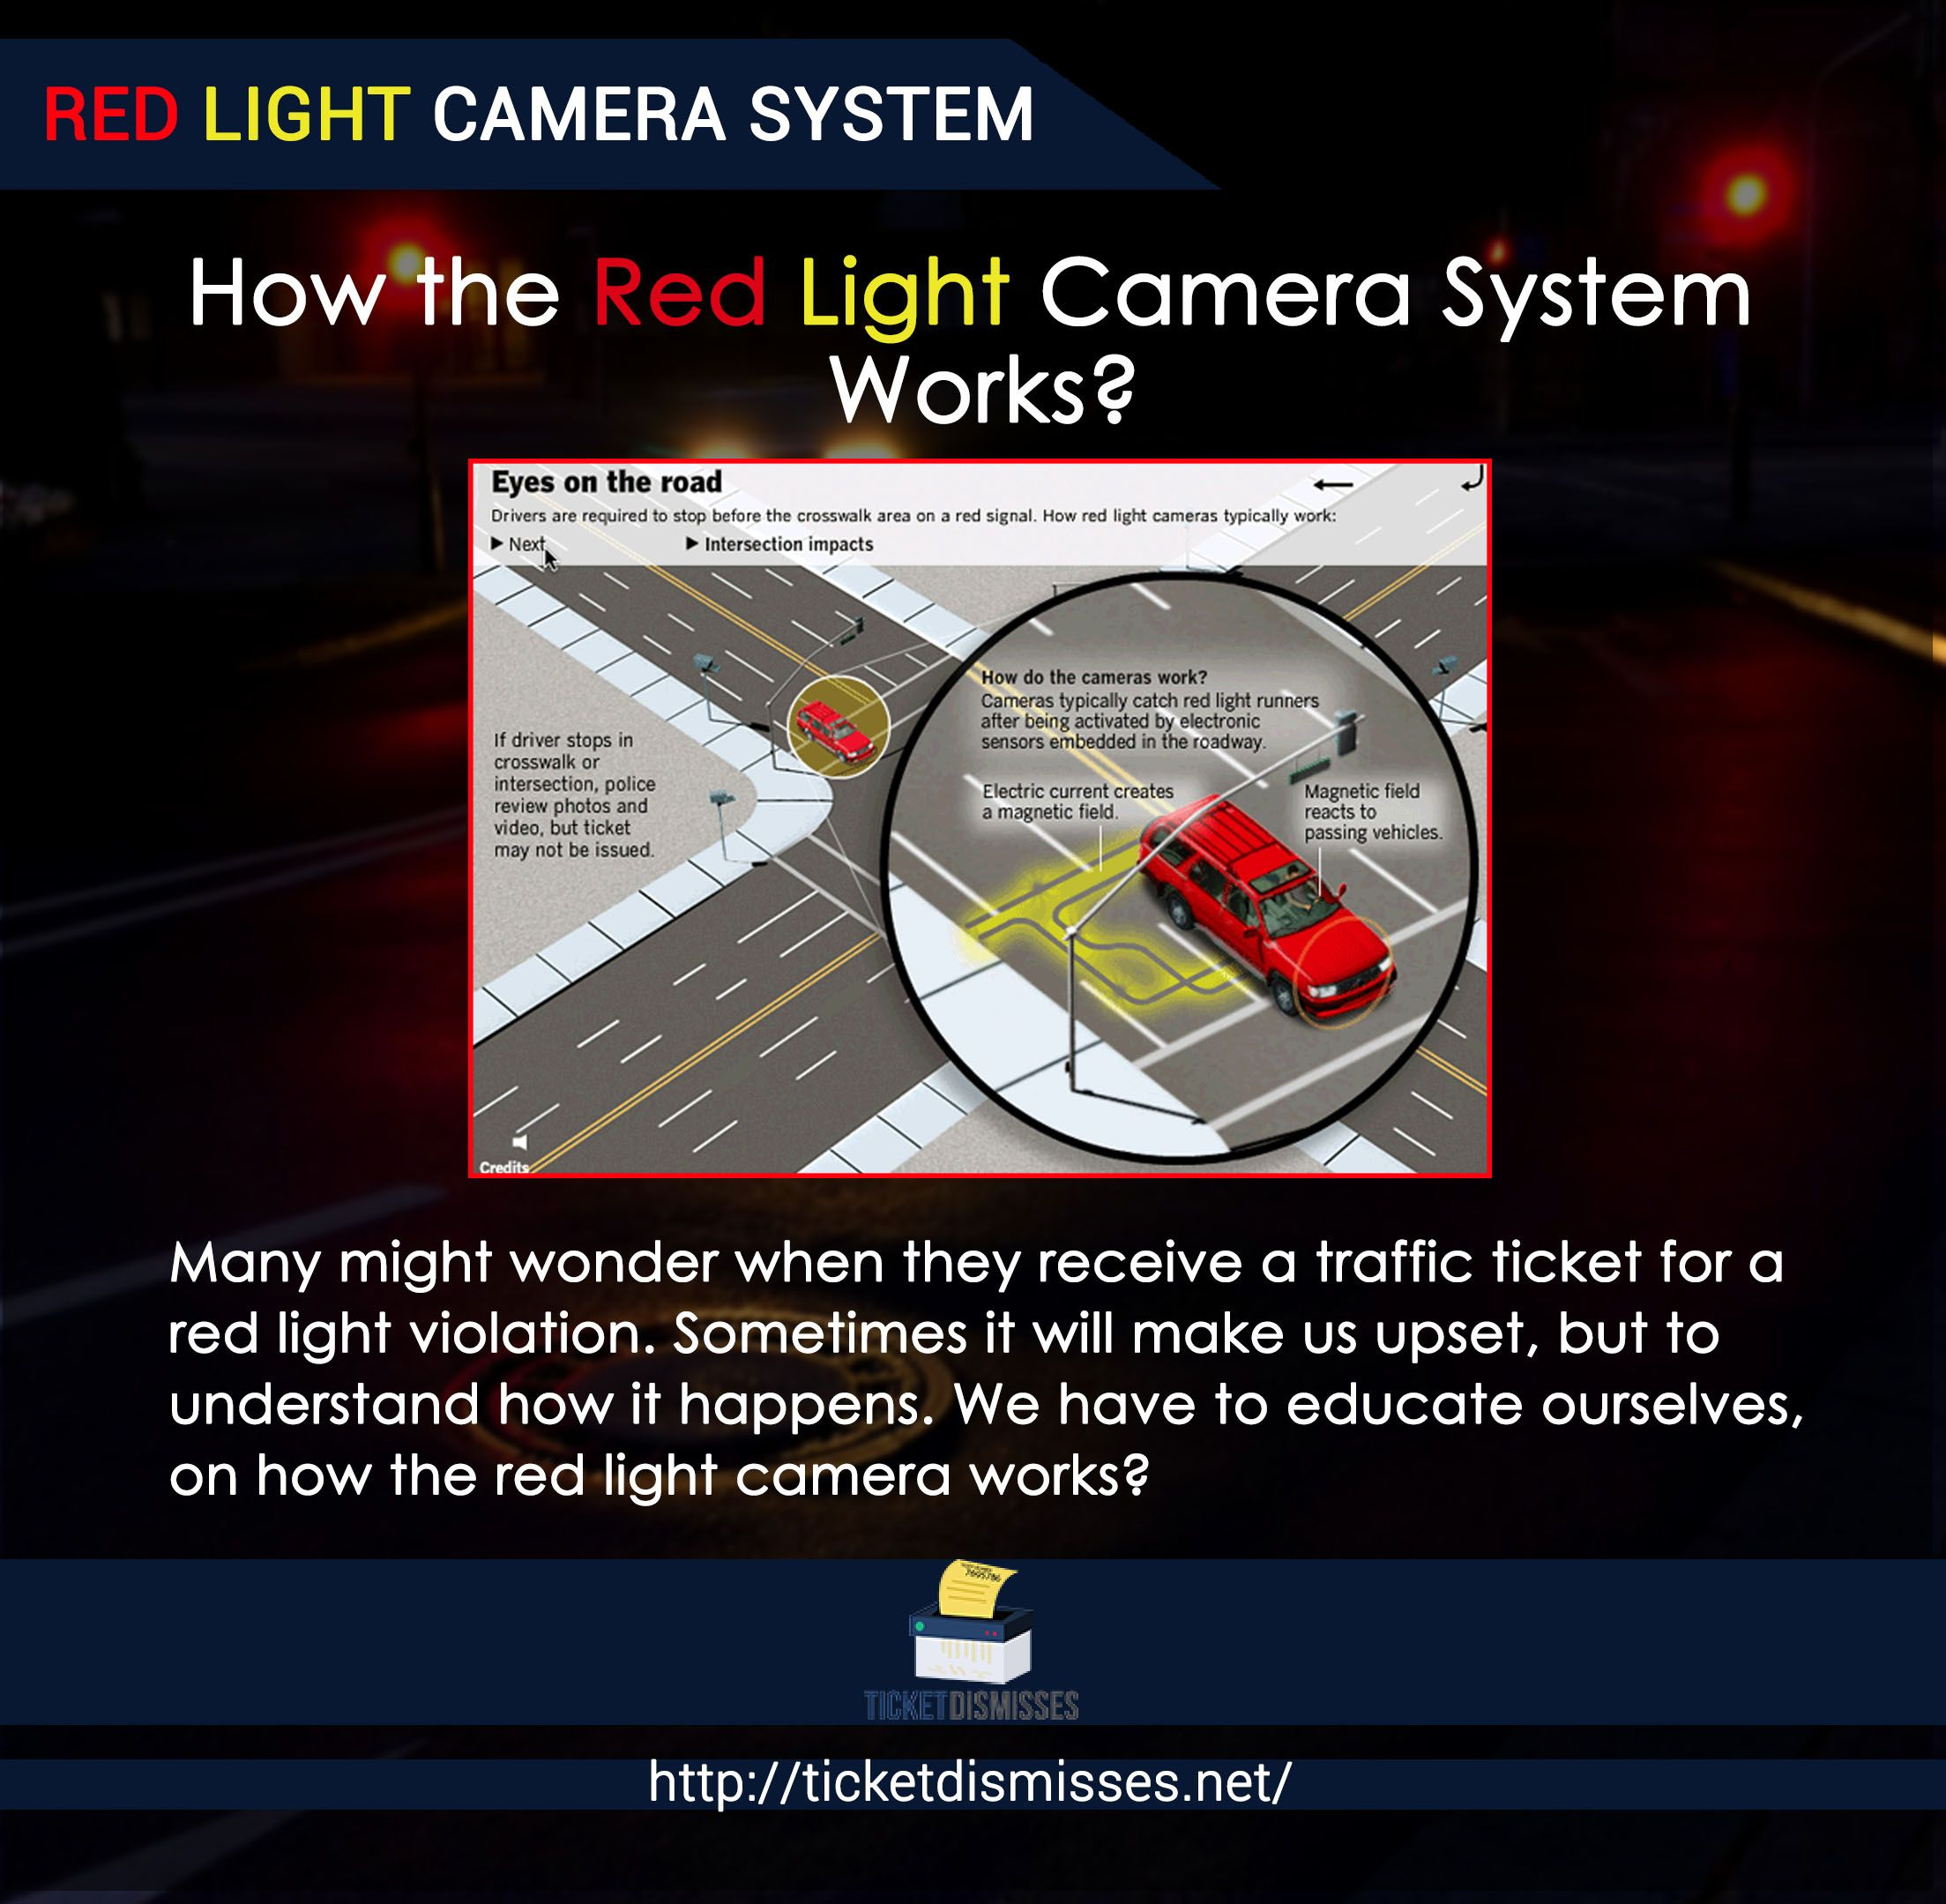 Red Light Camera System. How The Red Light Camera System